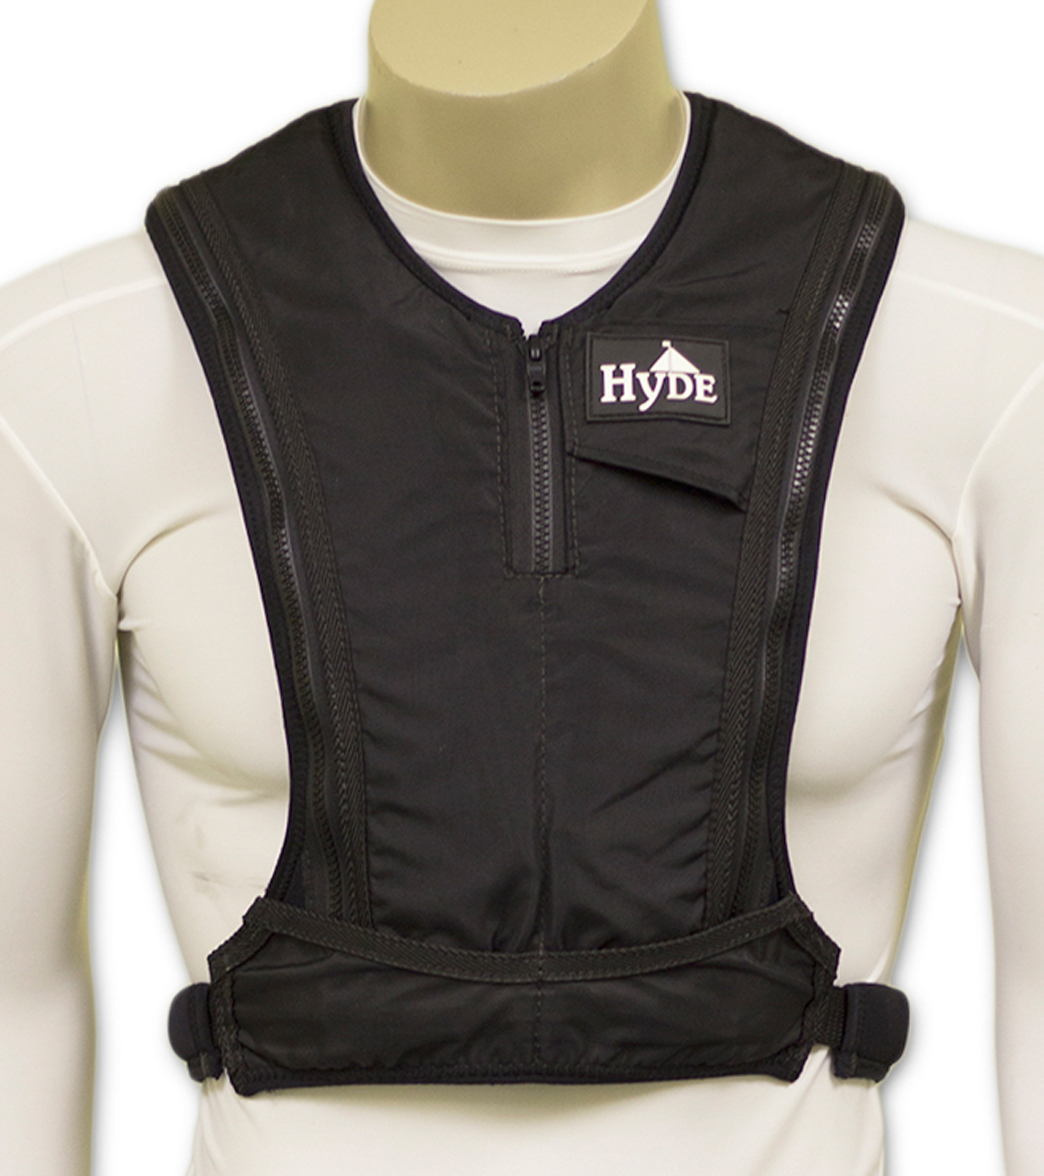 Hyde Wingman Inflatable Life Jacket